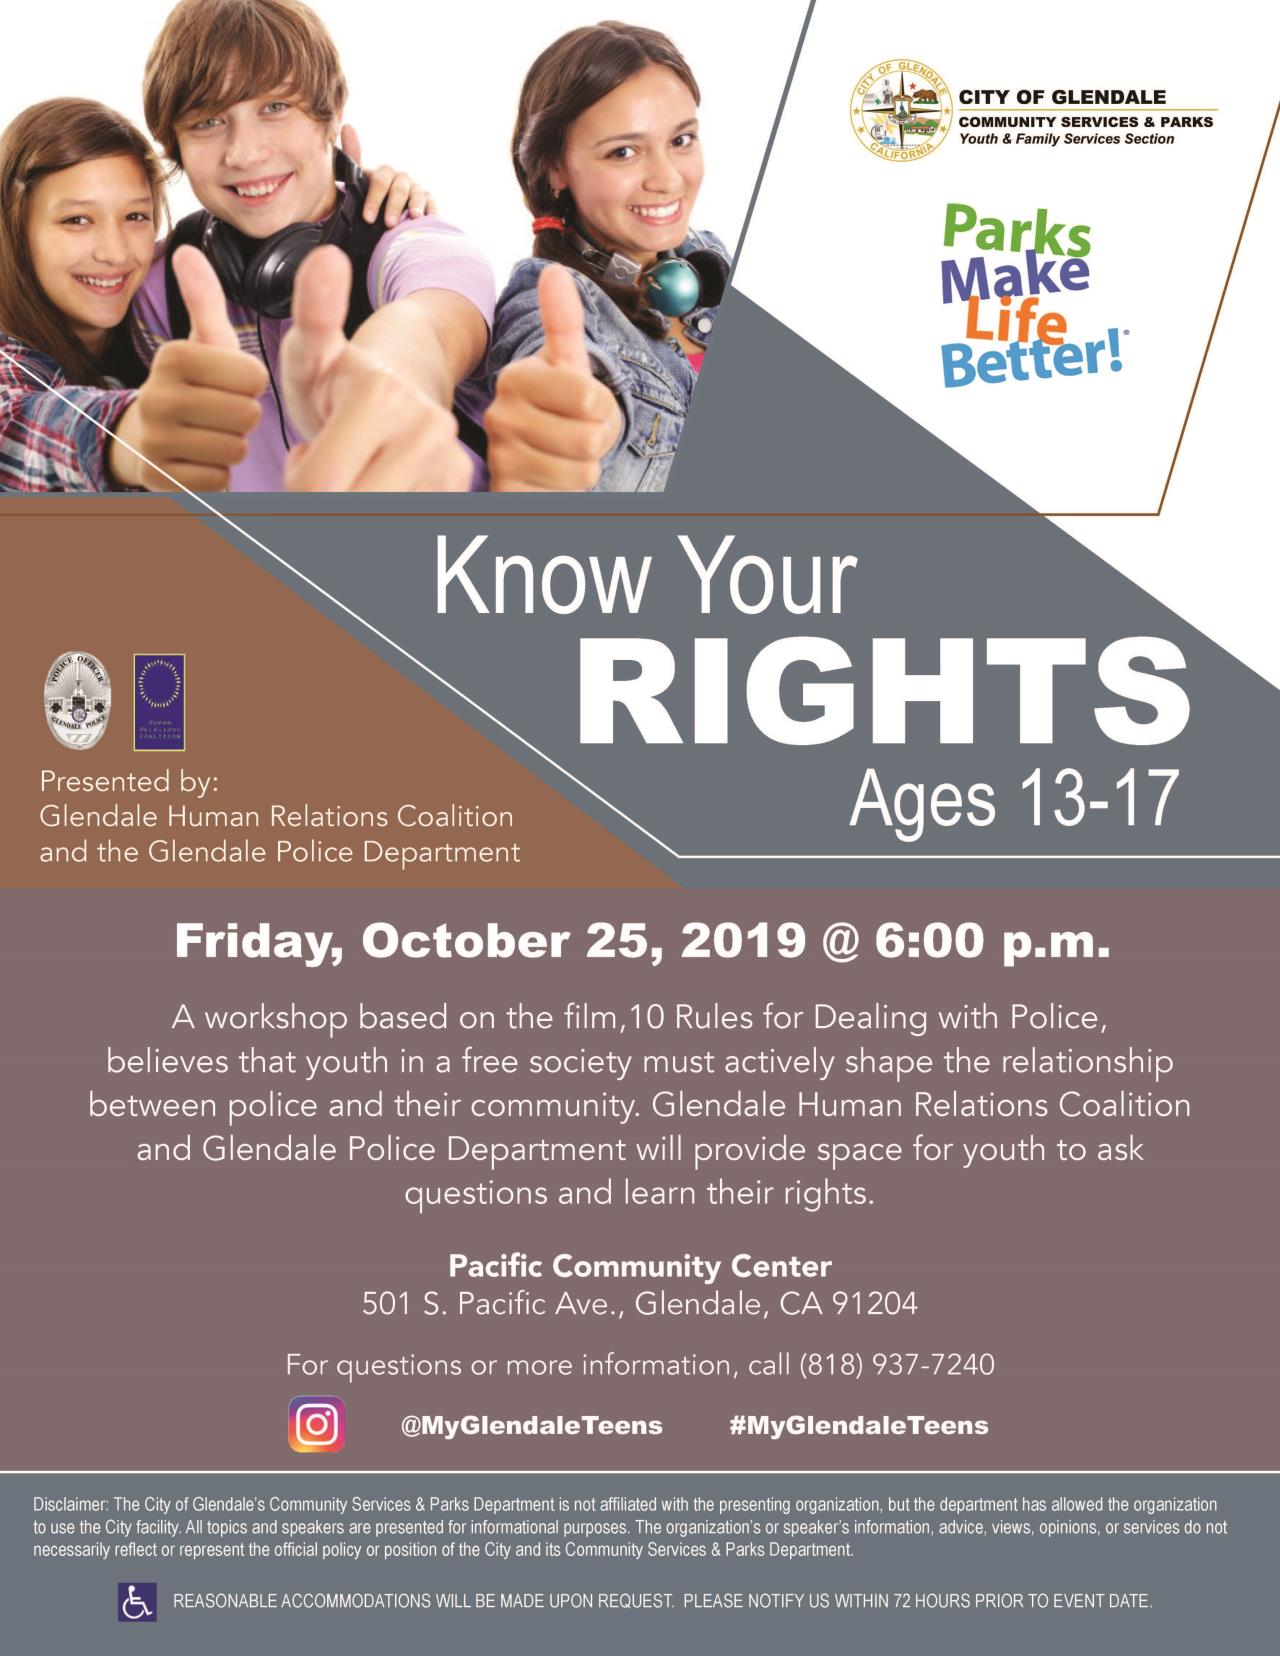 Know Your Rights Flyer 2019 FINAL1